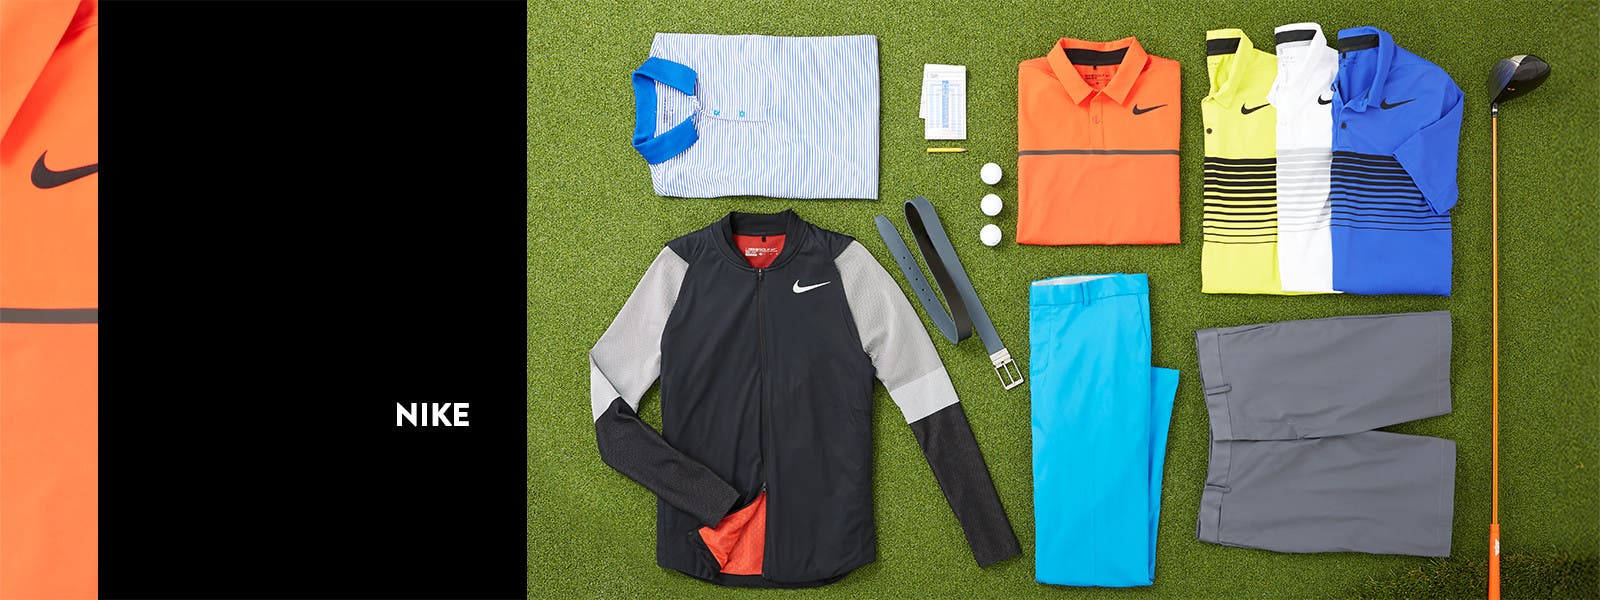 Nike golf apparel.